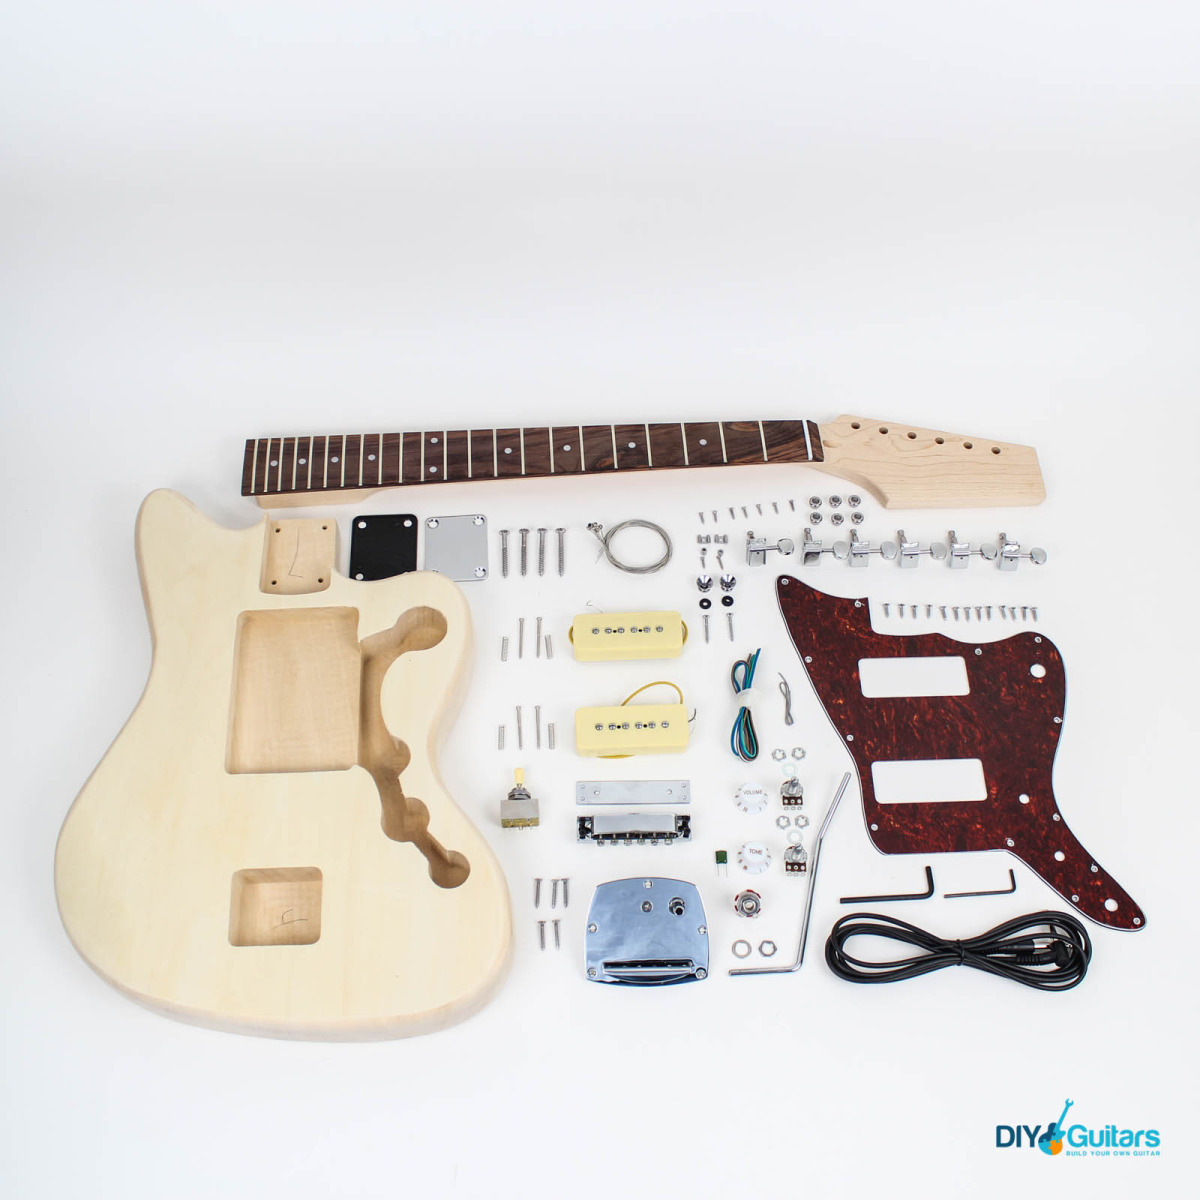 guitar kits jazzmaster guitar kits. Black Bedroom Furniture Sets. Home Design Ideas